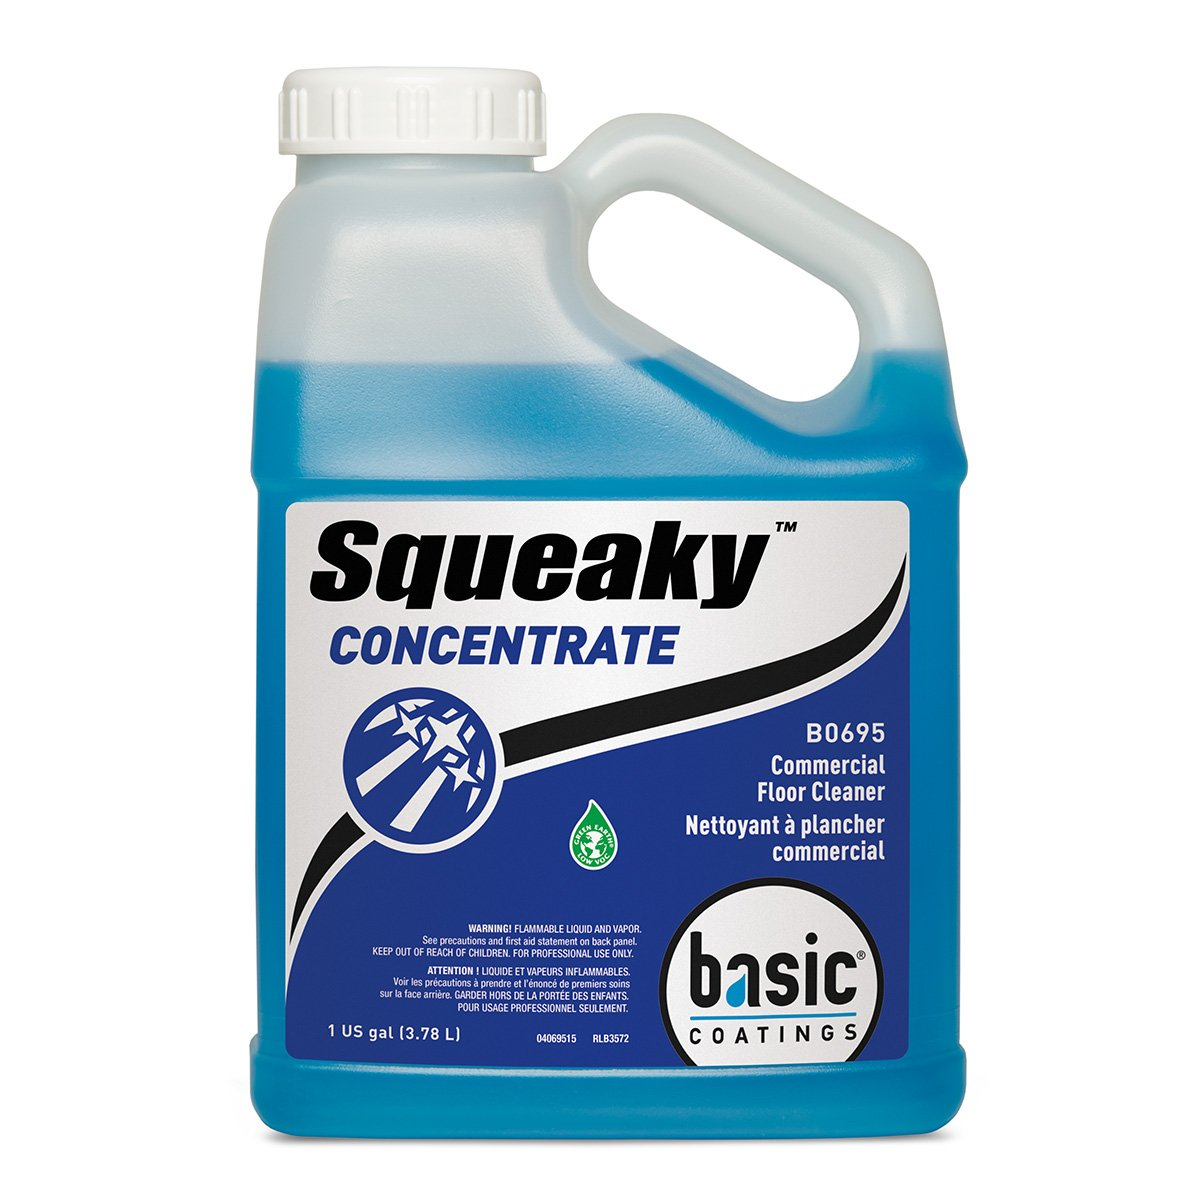 Basic Coatings SQK CONC GAL Squeaky Concentrate Cleaner, 1 gal